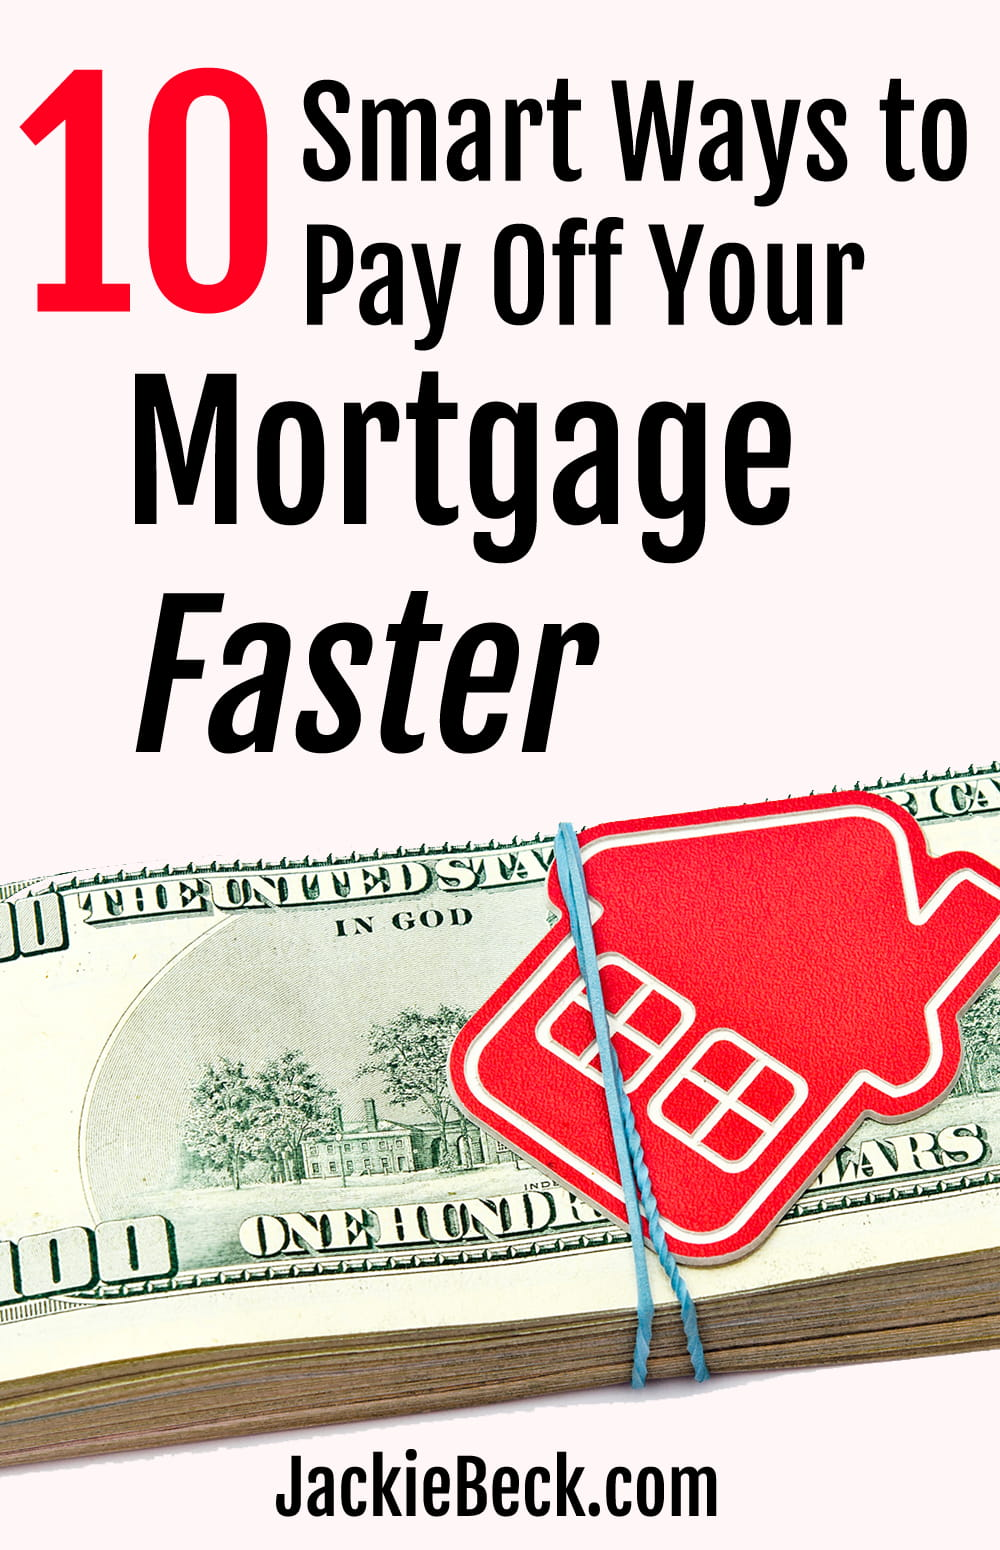 10 Smart Ways to Pay Off Your Mortgage Faster